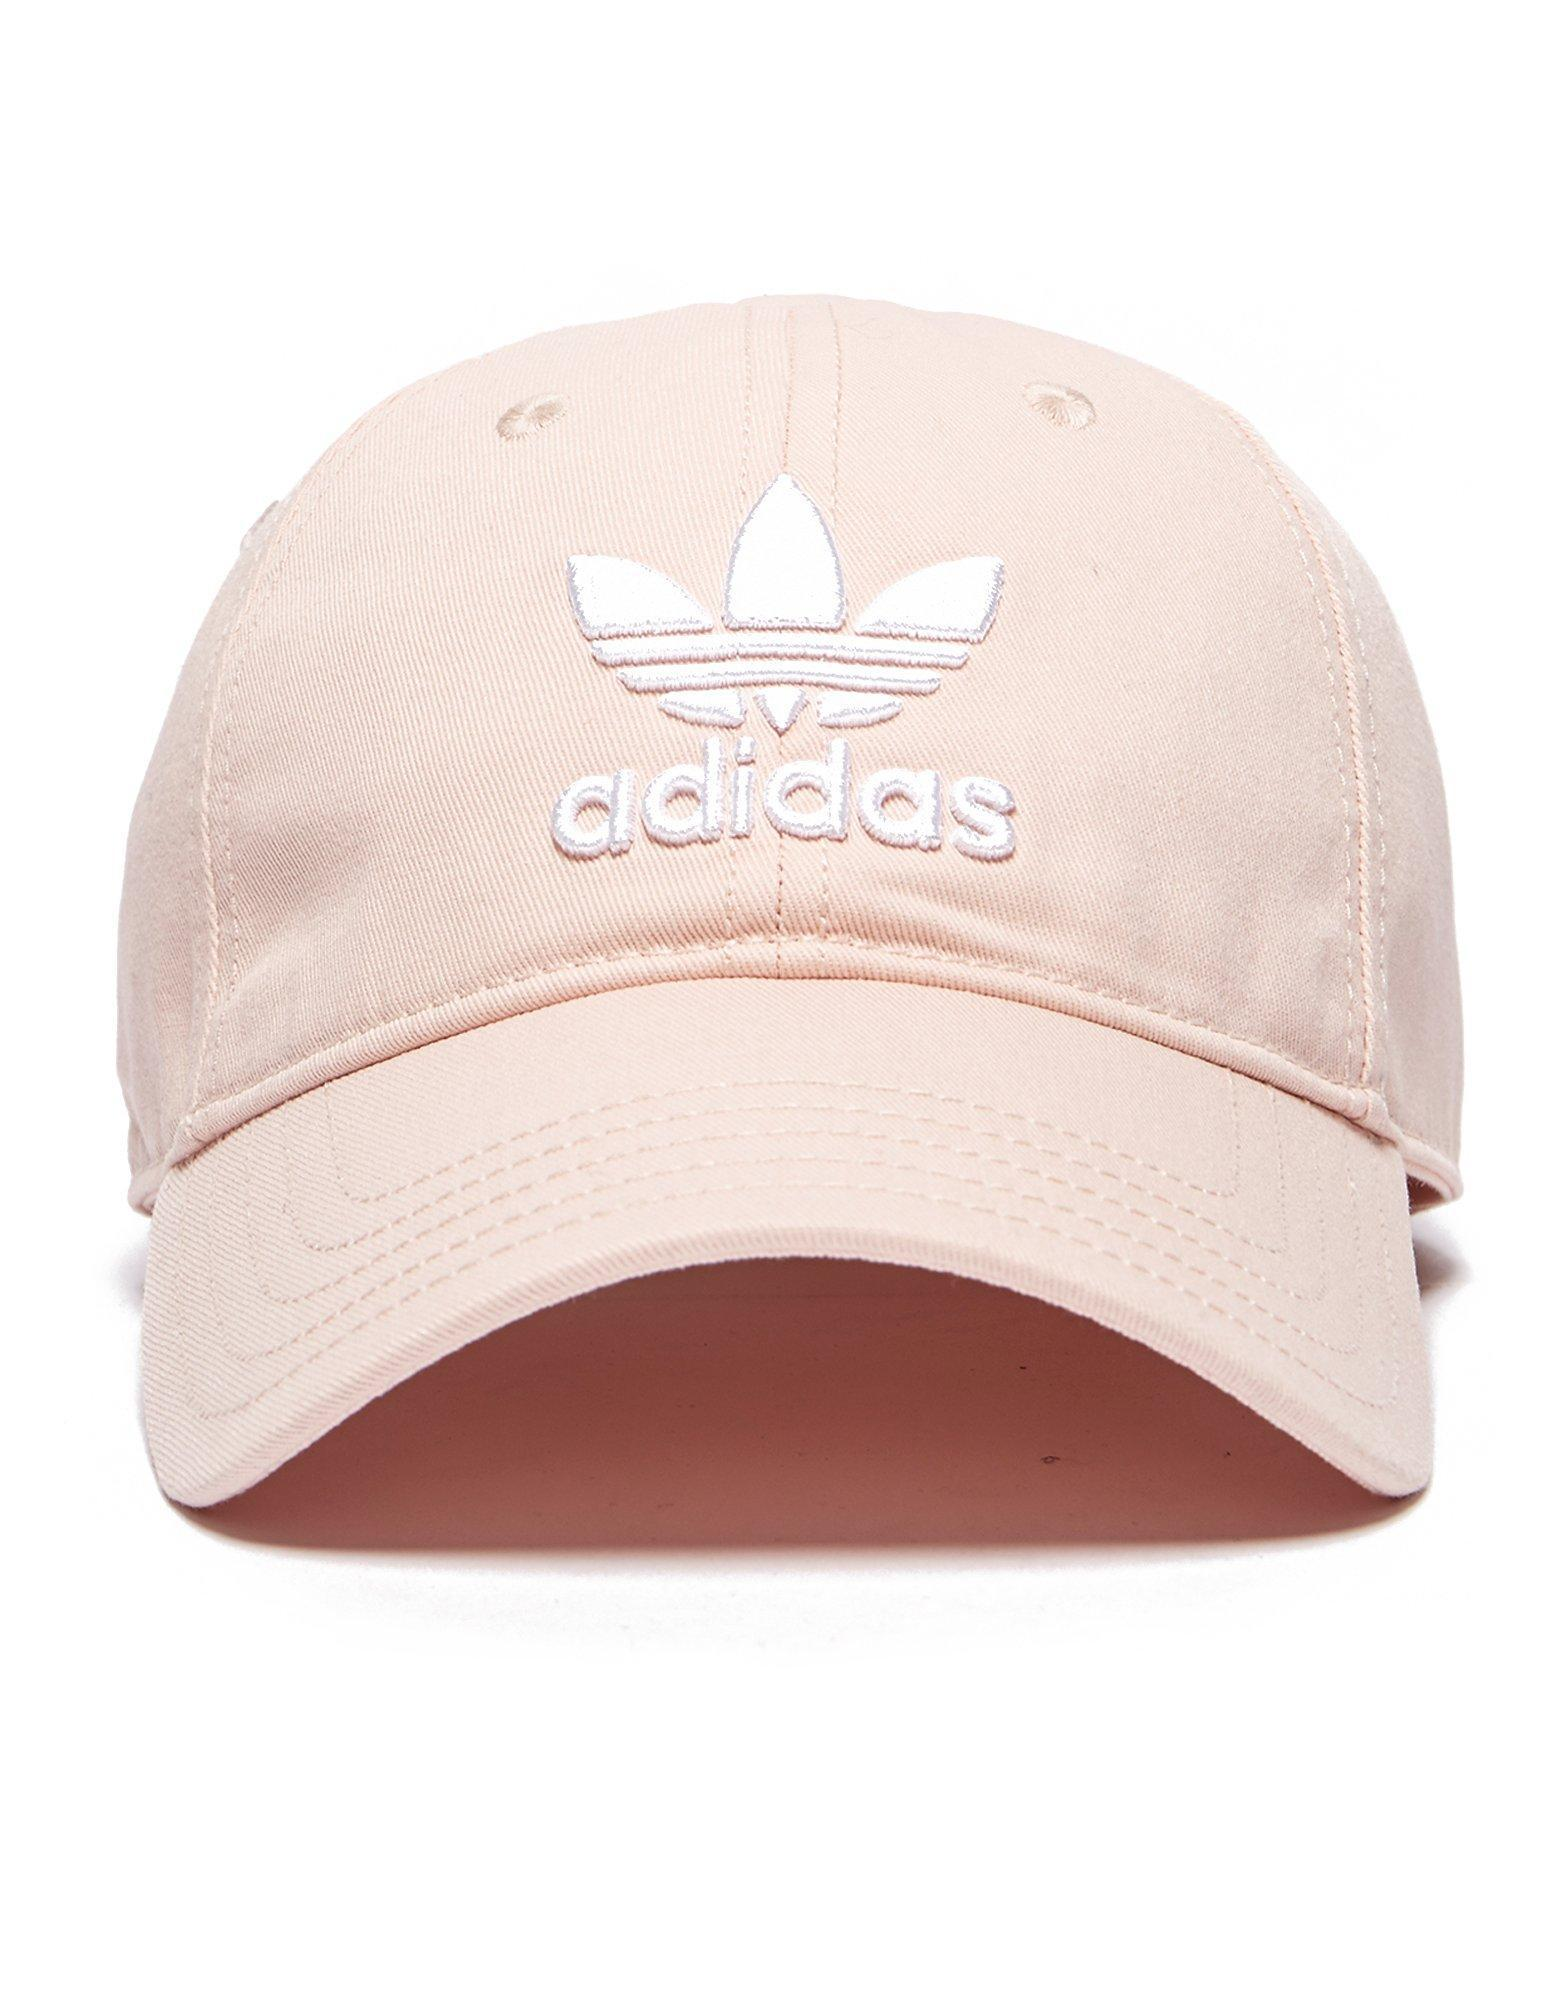 Adidas Originals Trefoil Classic Cap in Pink for Men - Lyst d1fd52fcf06